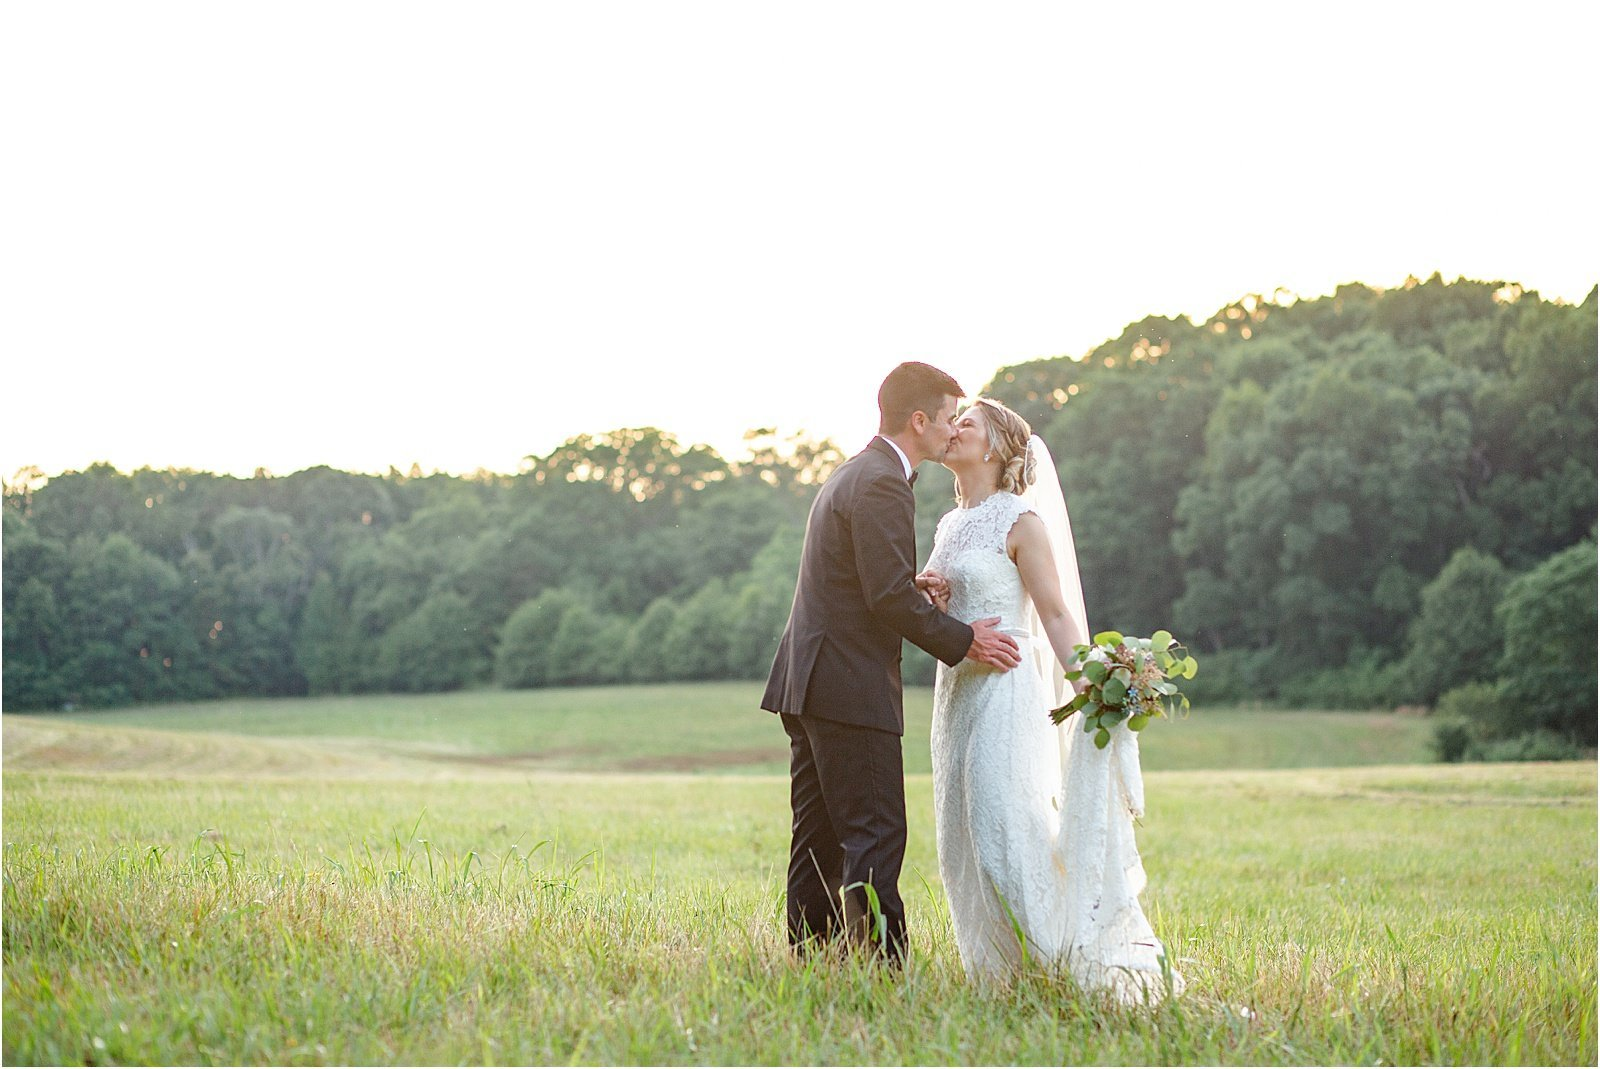 Wedding photography couple in Greenville, SC kissing in a field with a sunset